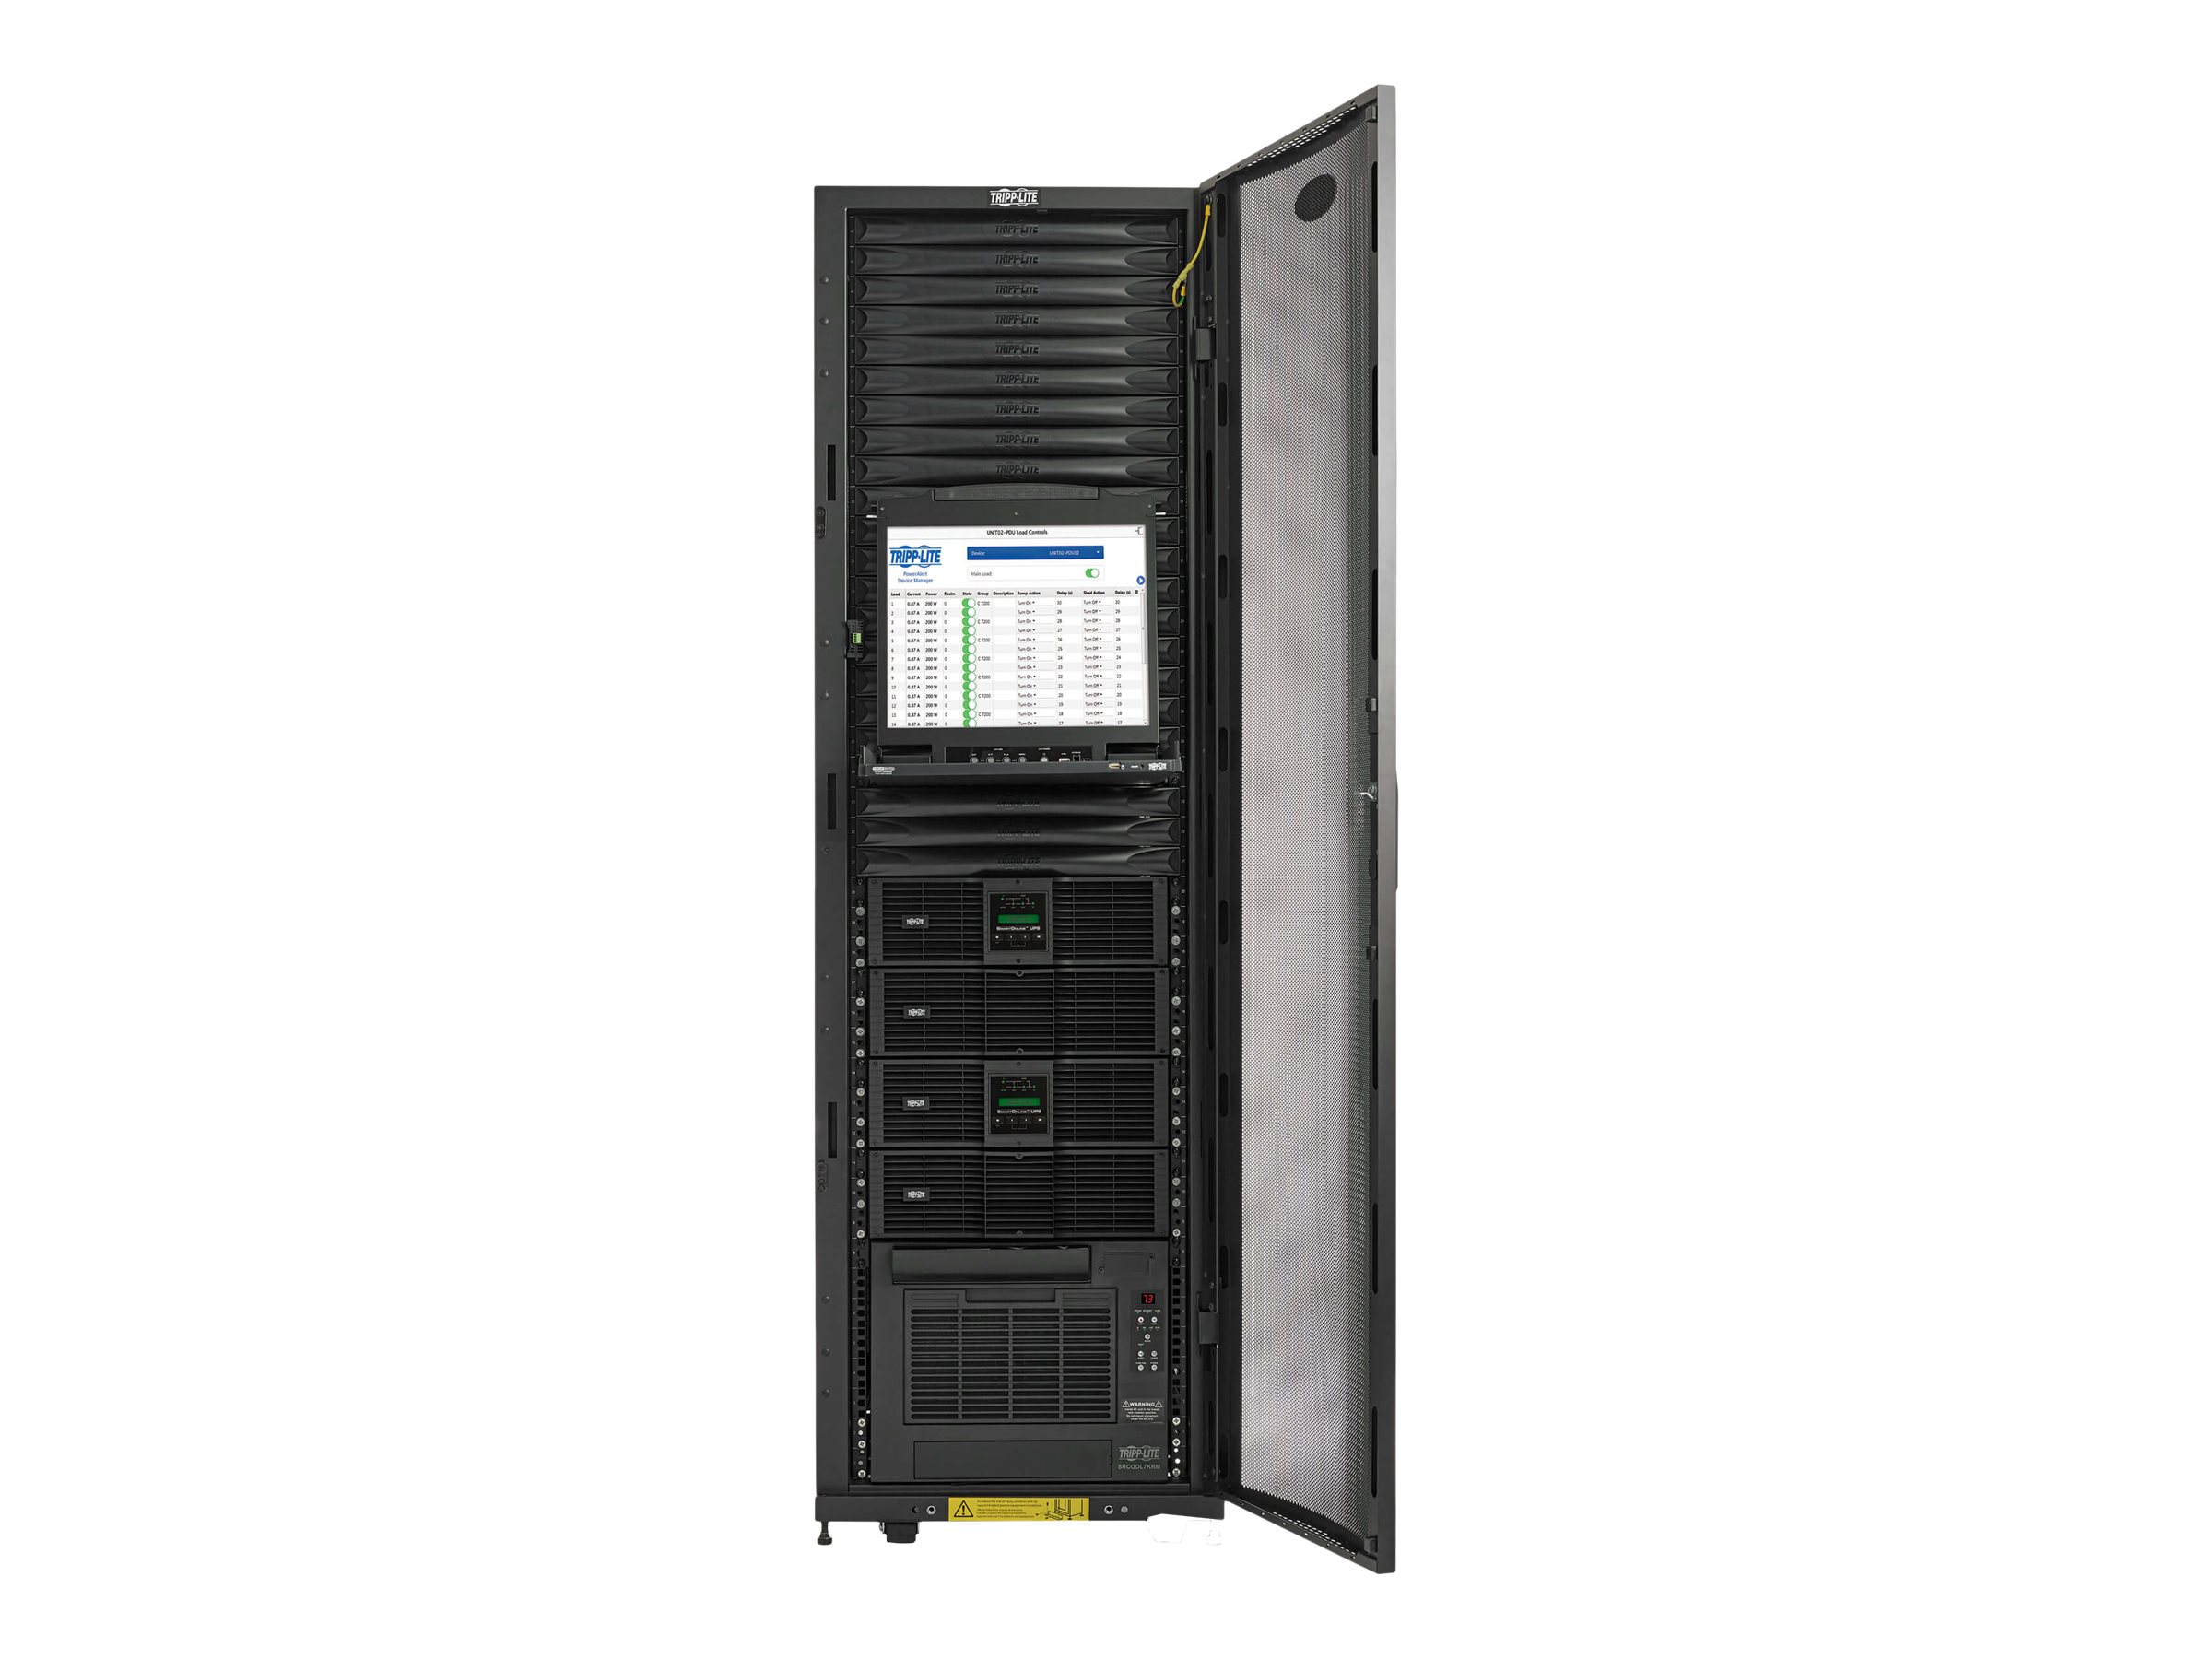 Tripp Lite EdgeReady Micro Data Center - 38U, (2) 3 kVA UPS Systems (N+N), Network Management and Dual PDUs, 230V Assem…